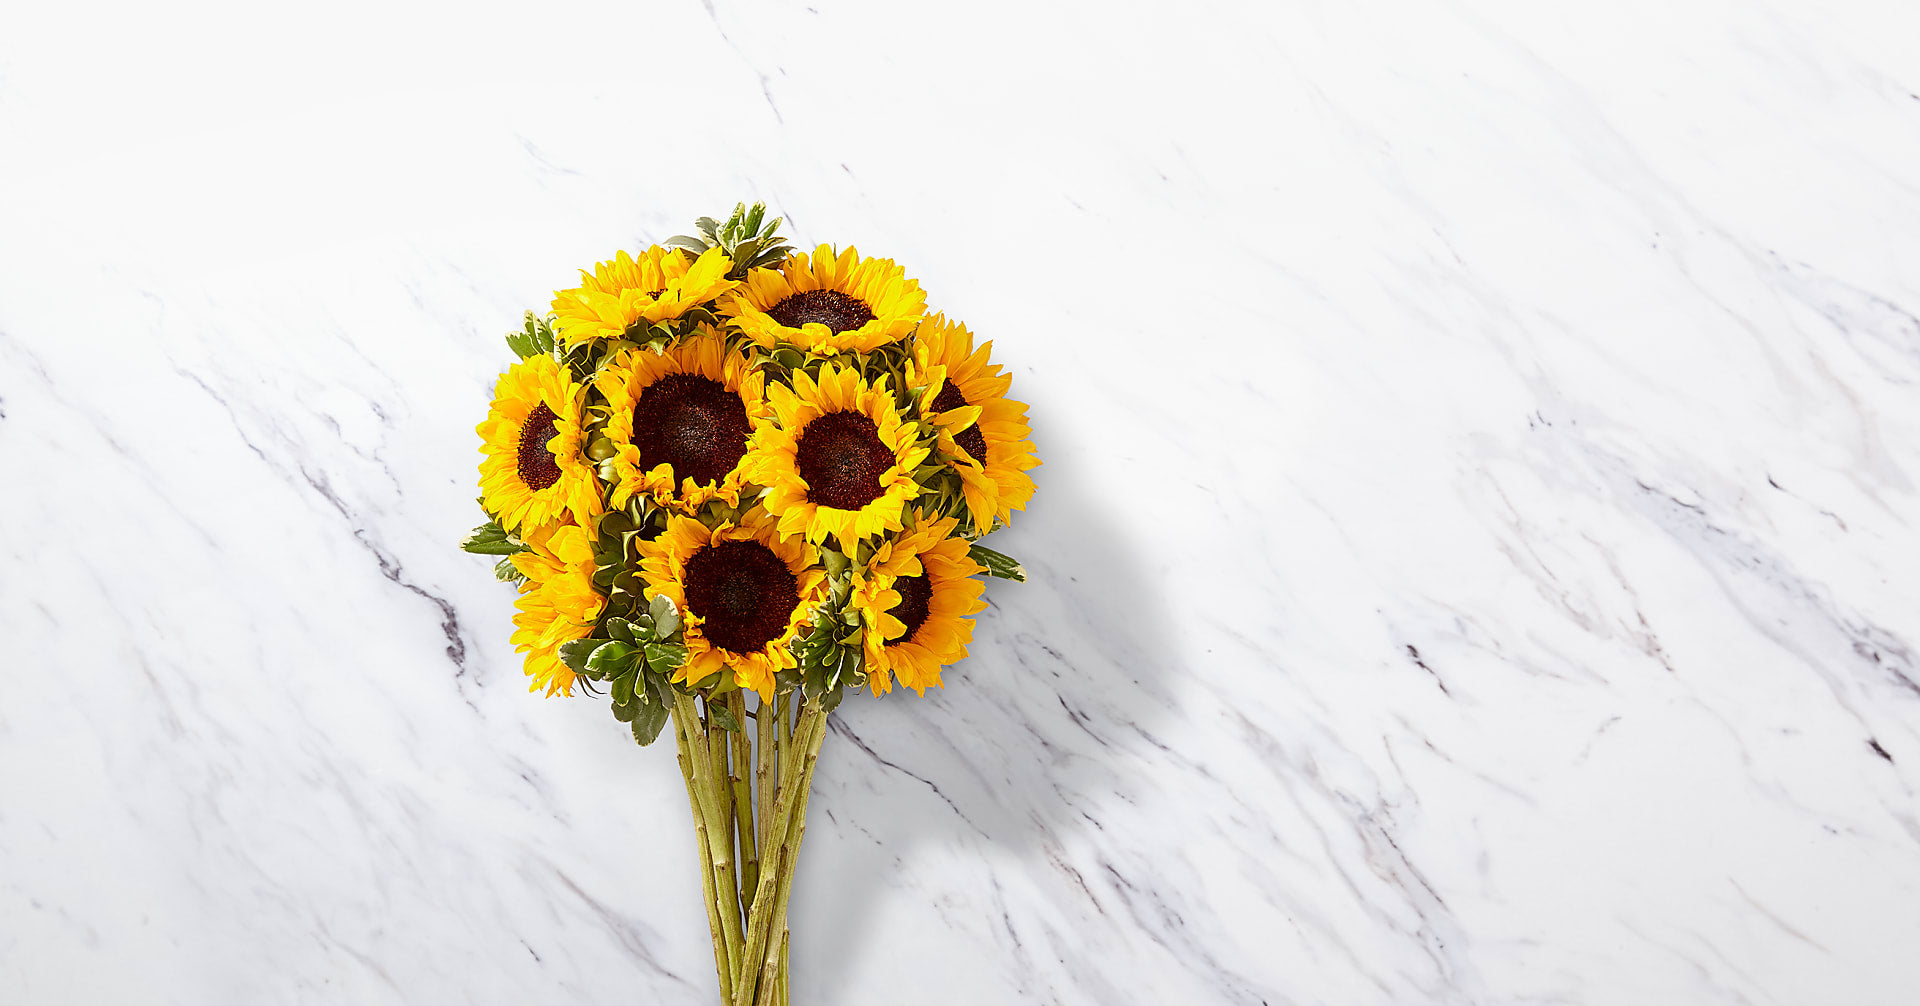 Endless Summer Sunflower Bouquet - 9 Stems with Vase - Image 2 Of 5